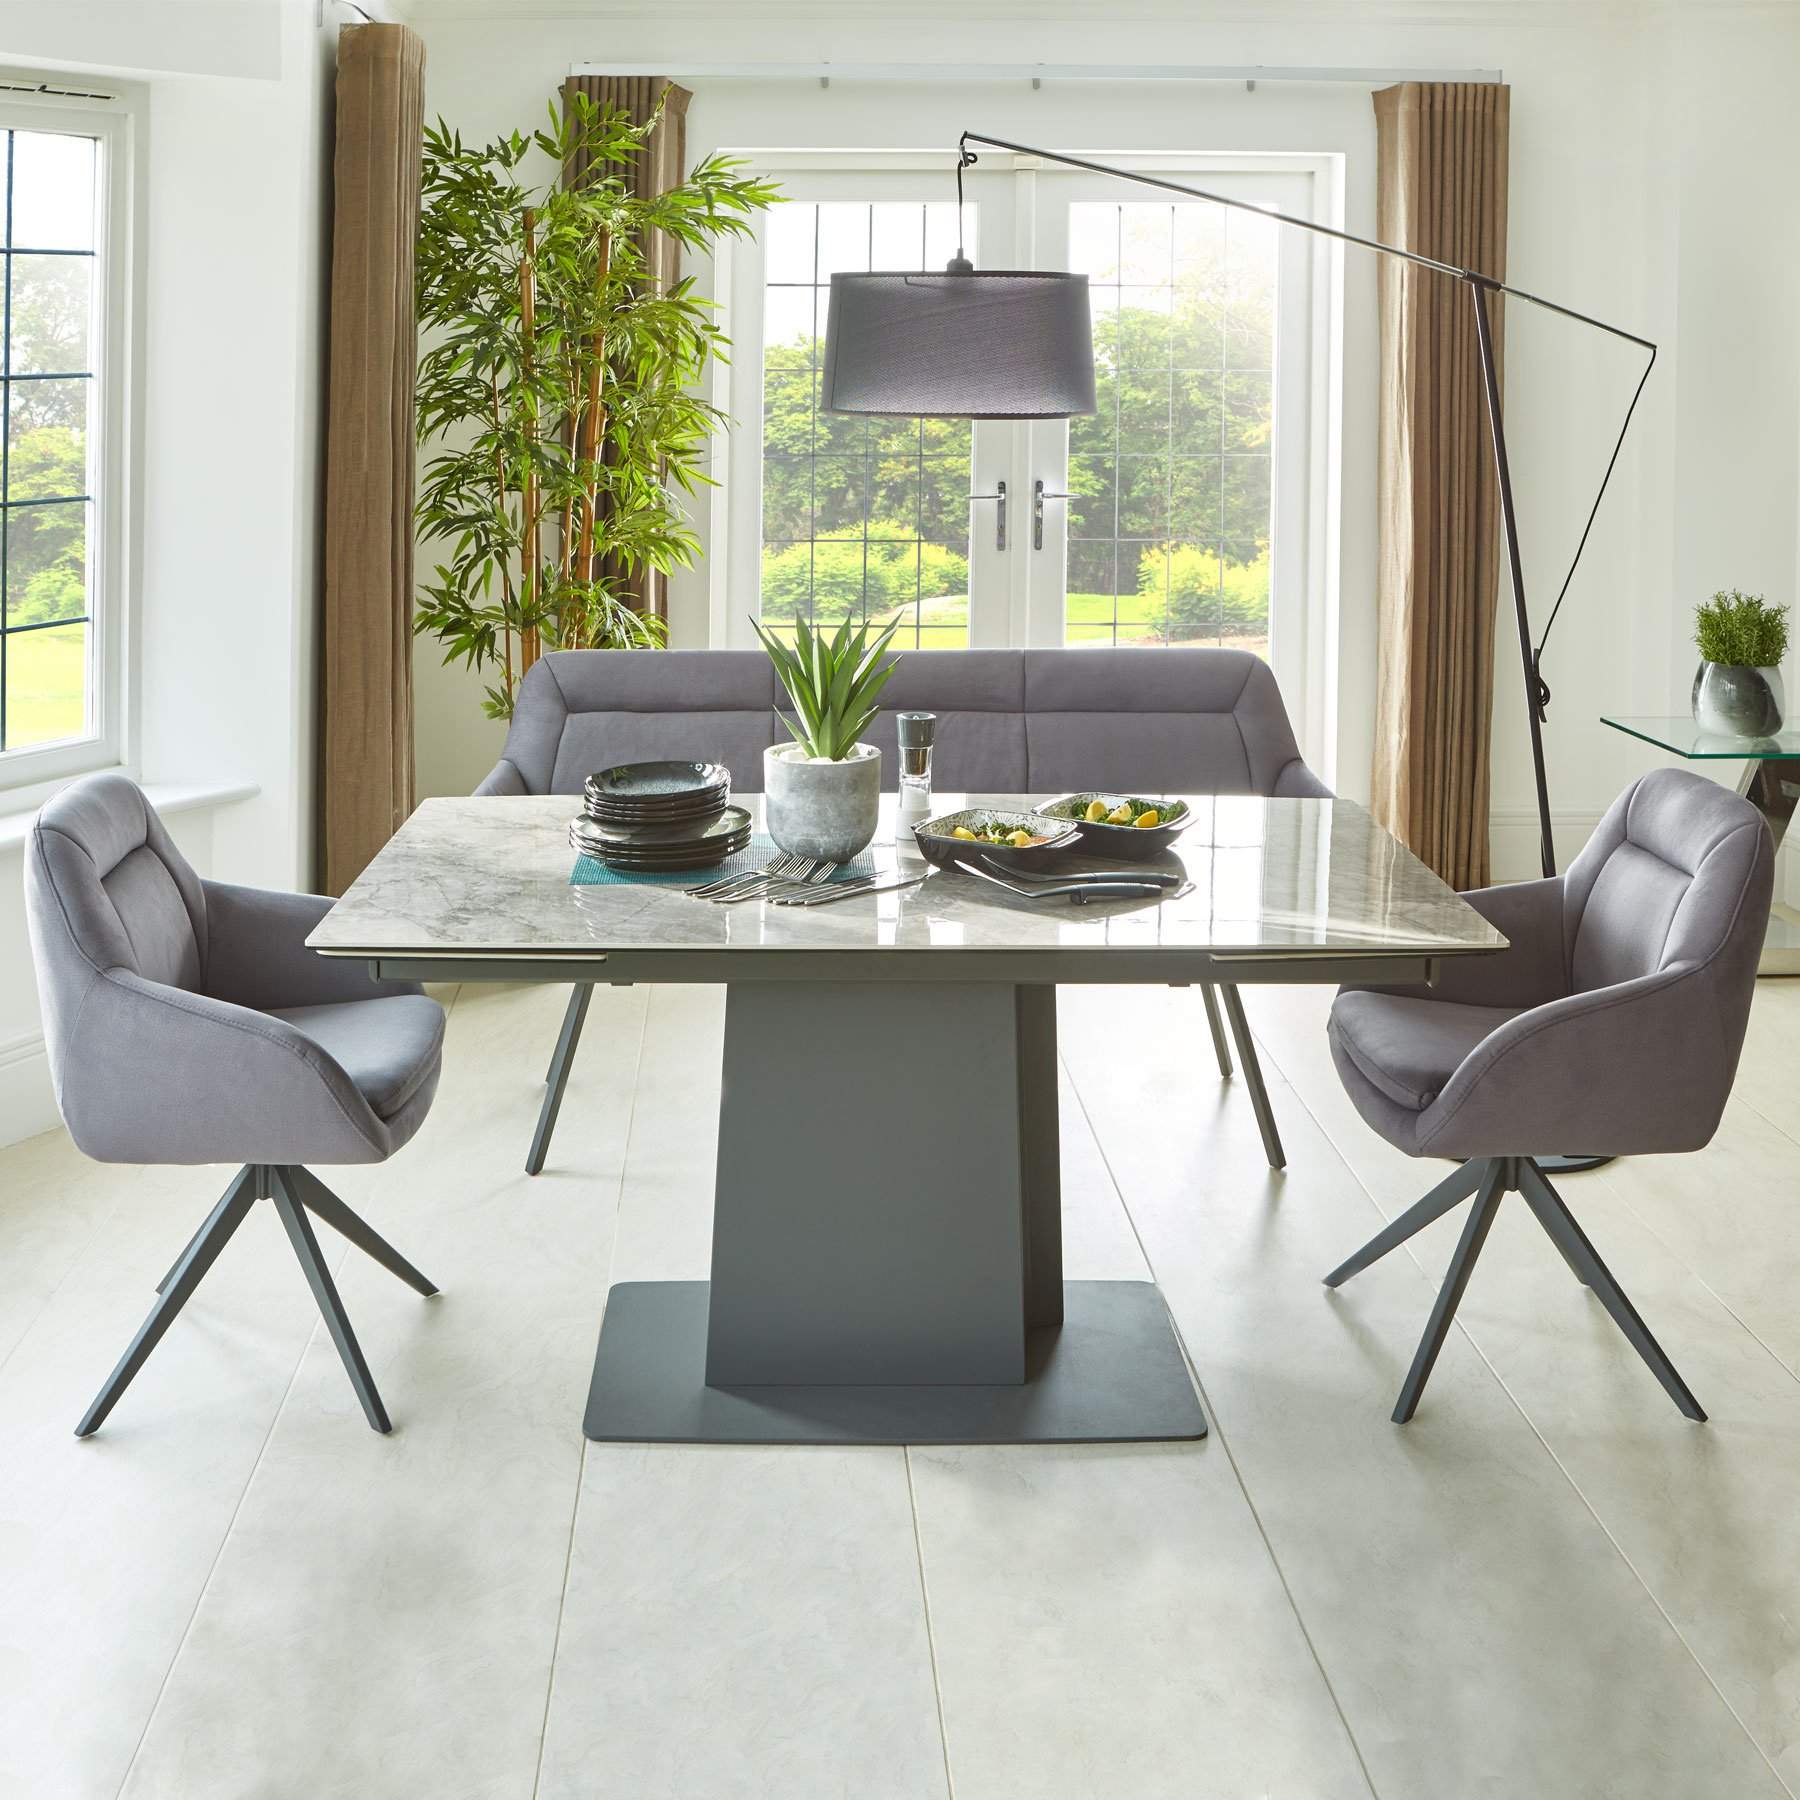 Ideas About Extending Dining Bench, – Howellmagic Dining Within Newest Rustic Mahogany Benchwright Pedestal Extending Dining Tables (View 16 of 25)